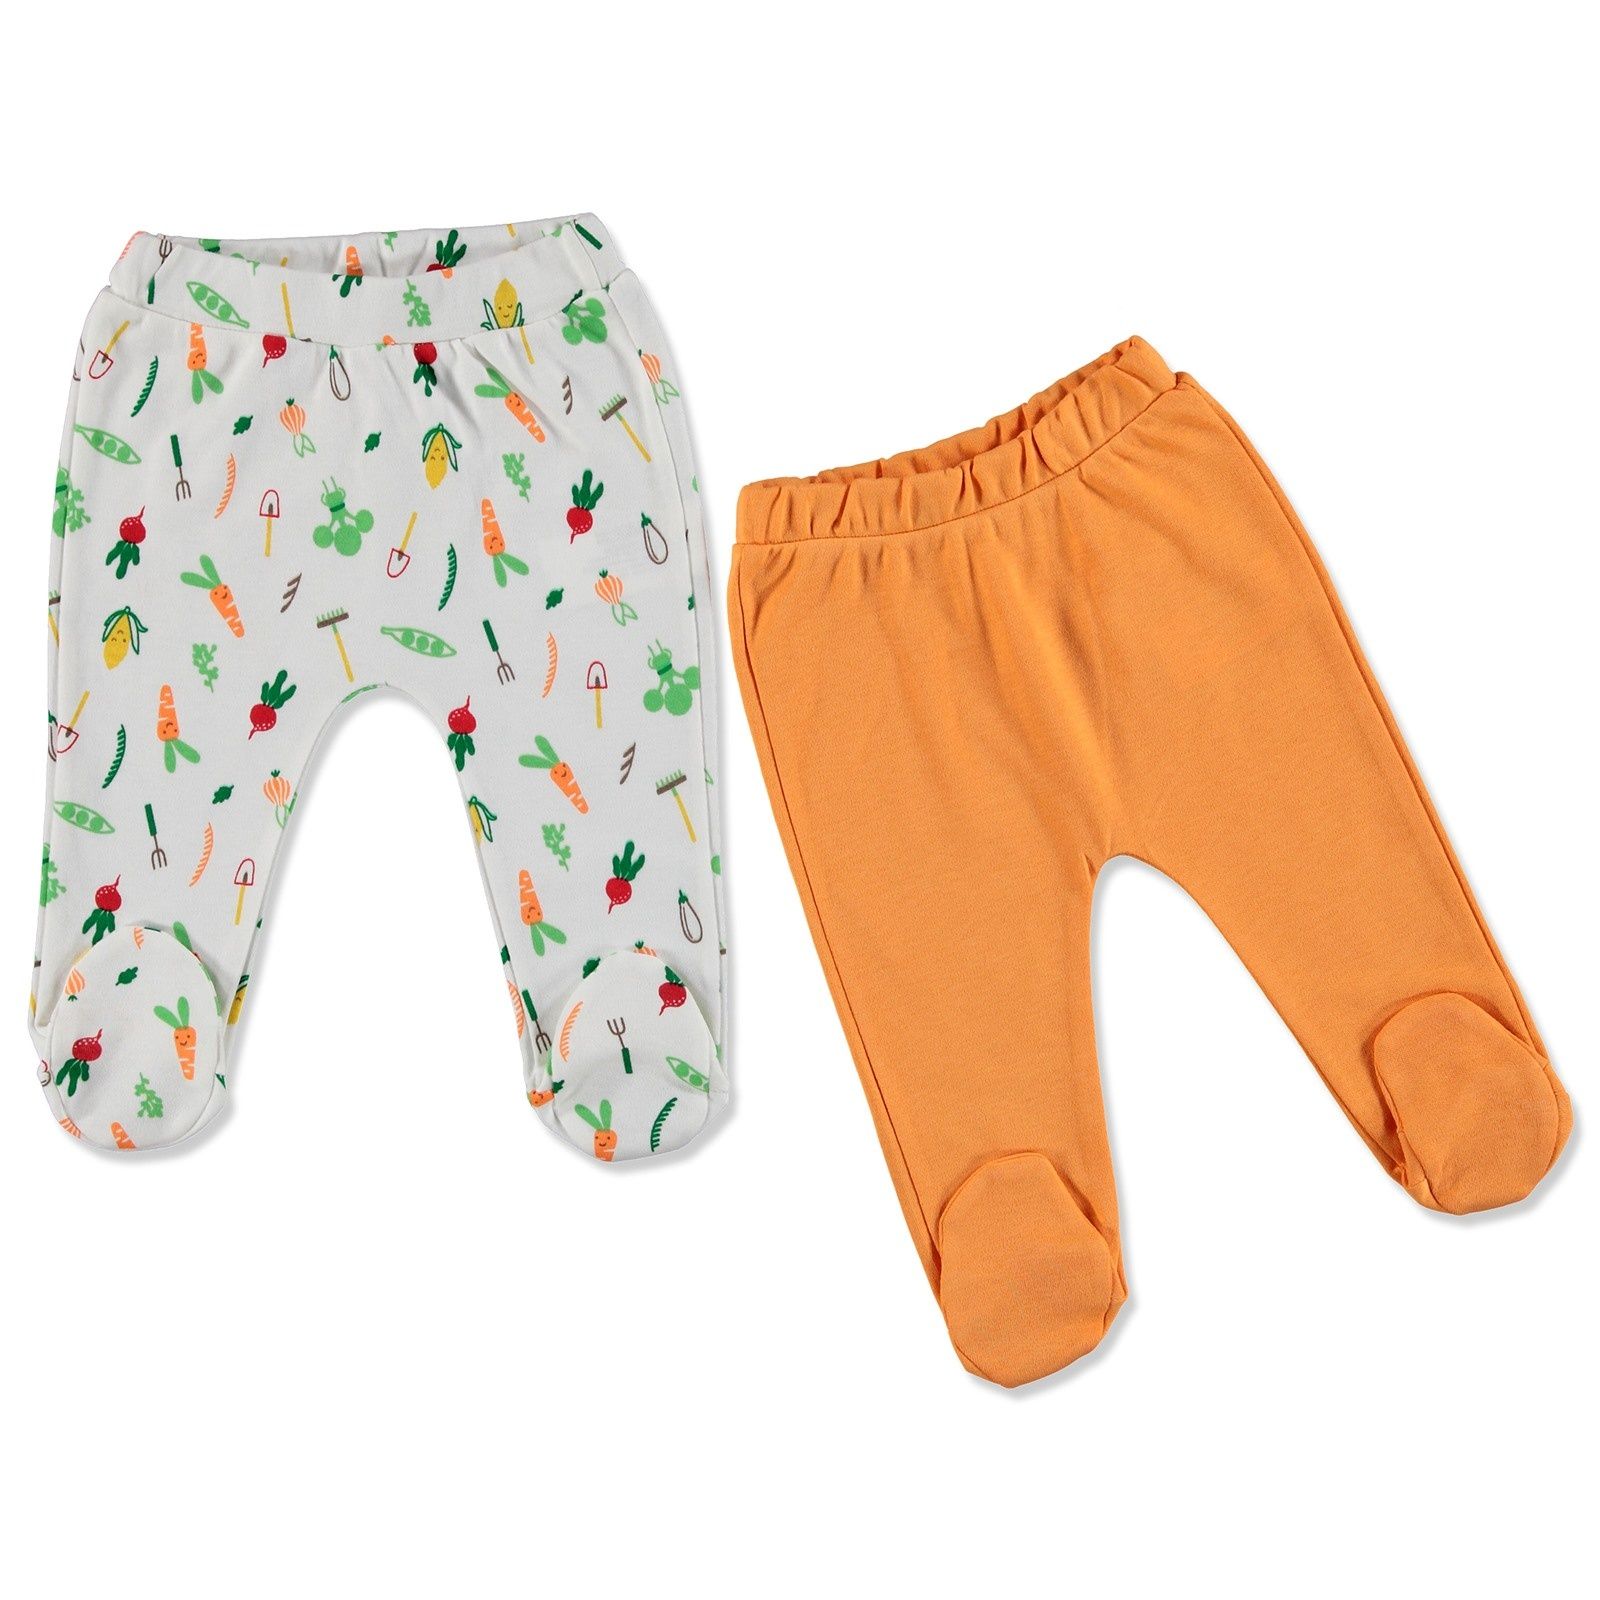 Ebebek HelloBaby Summer Baby Sweet Vegetables Footed Pant 2 Pcs